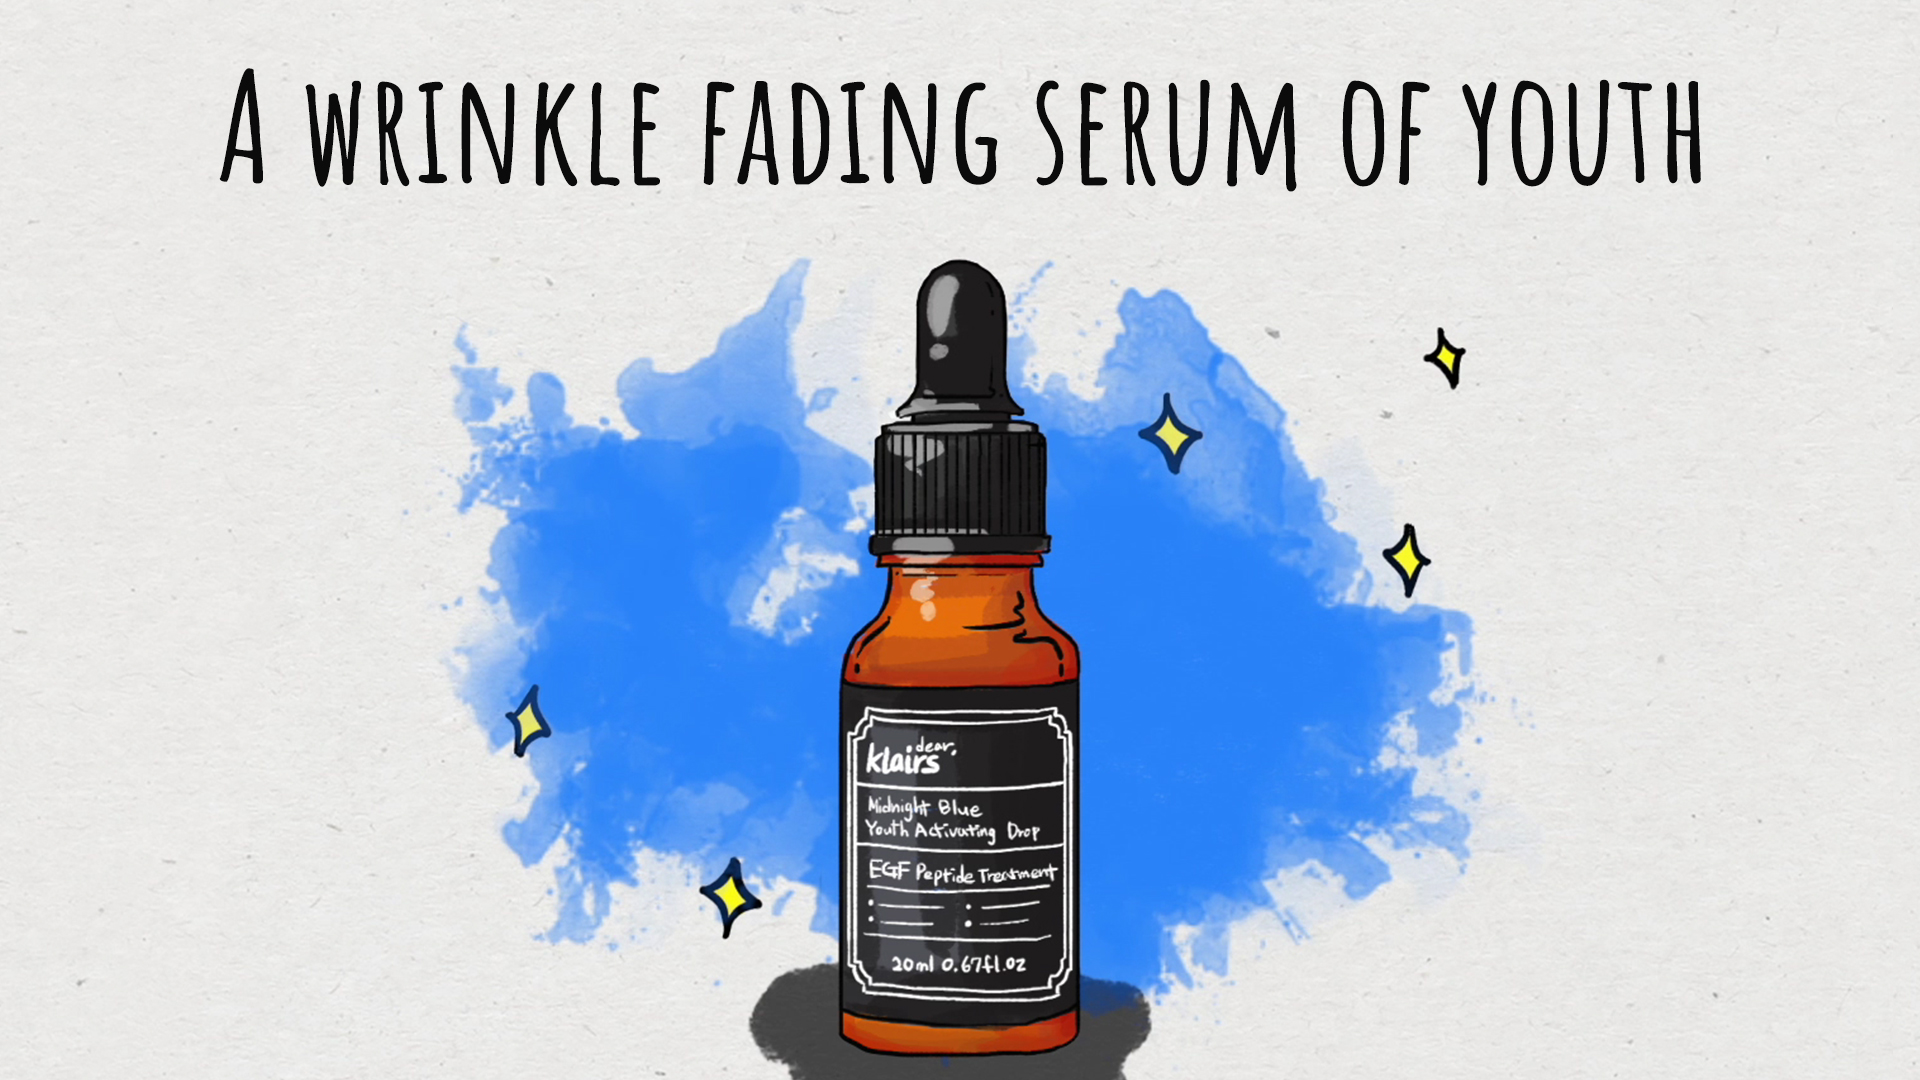 Why Do Wrinkles Form? The Most Effective Way to Remove Wrinkles & Promote Ageless Skin